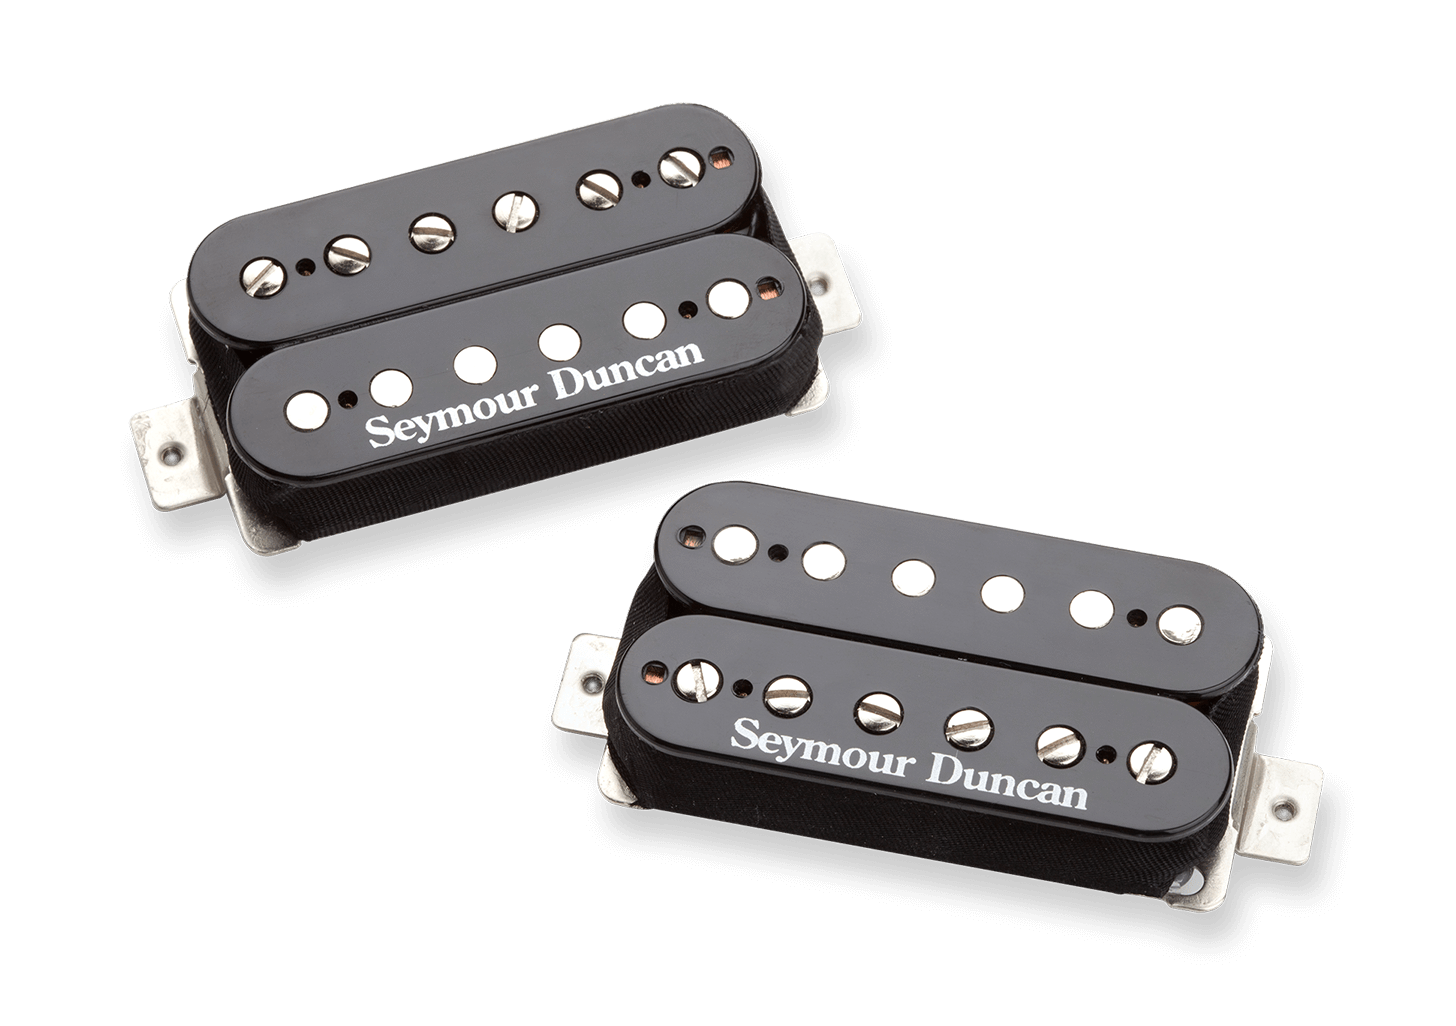 Seymour Duncan Mayhem Set SH-6